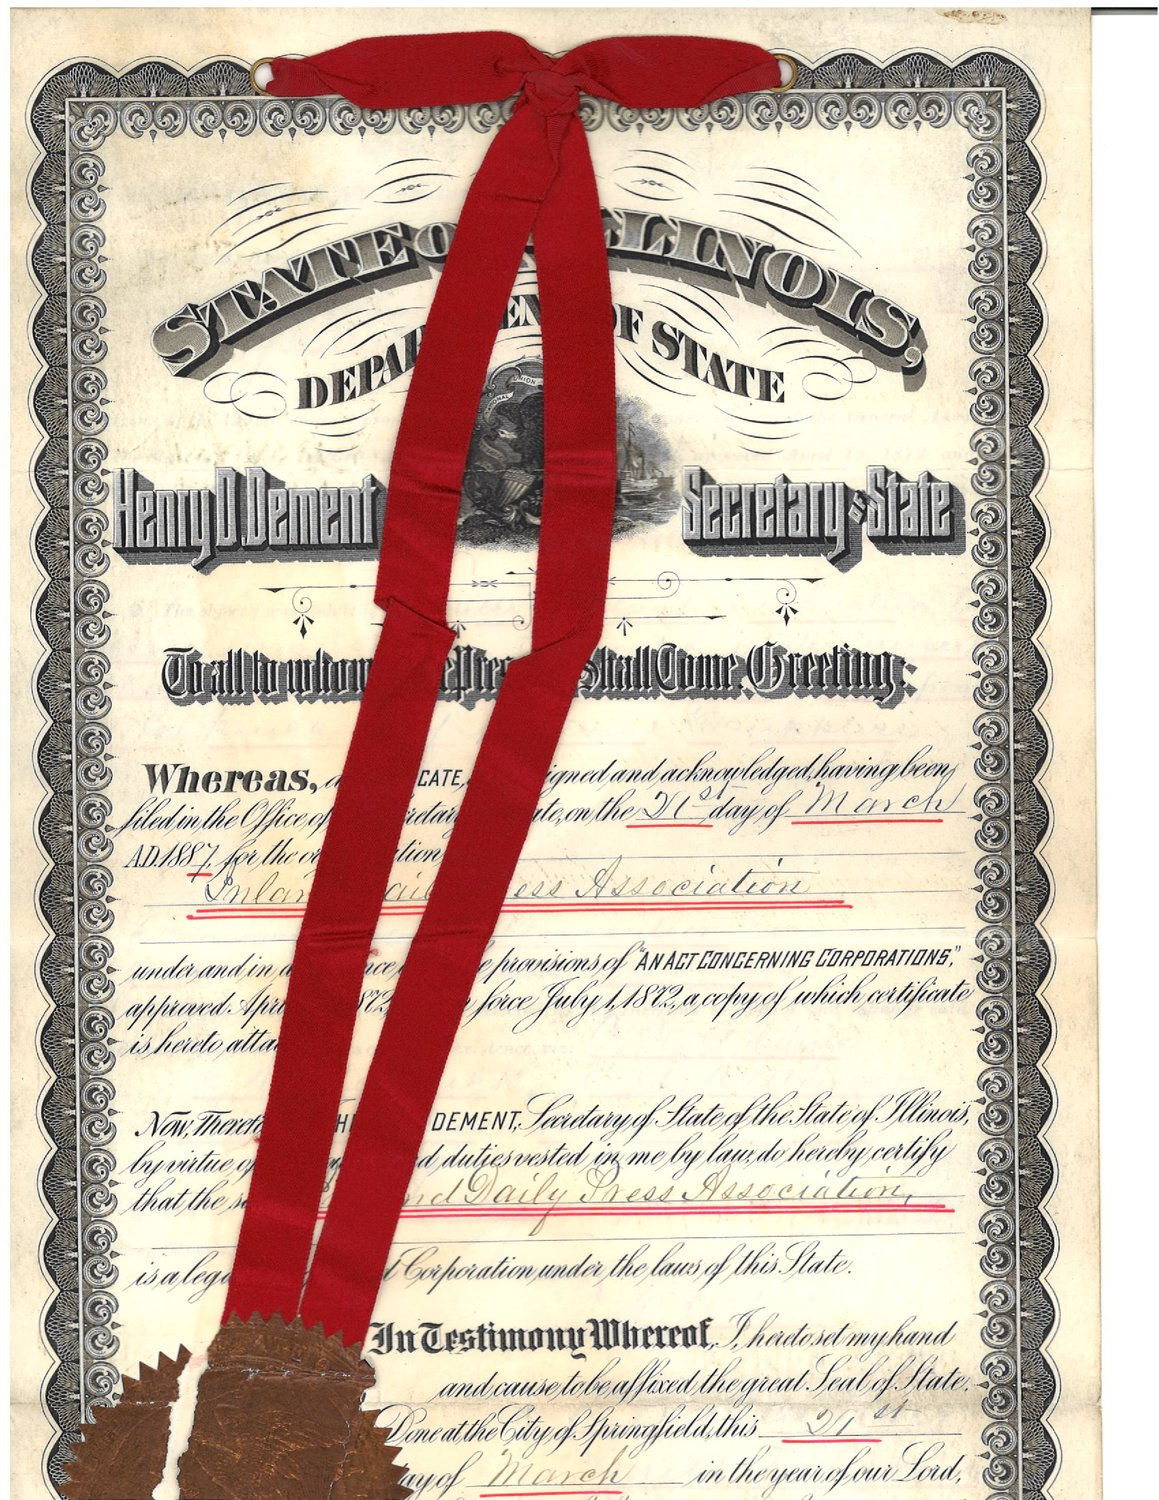 "Among the artifacts unearthed during spring cleaning at Inland's headquarters in suburban Chicago is an the official incorporation document for the ""Inland Daily Press Association"" from Illinois Secretary of State dated March 21, 1887, two years after 19 Midwest publishers held the associations first organizing meeting in Chicago."